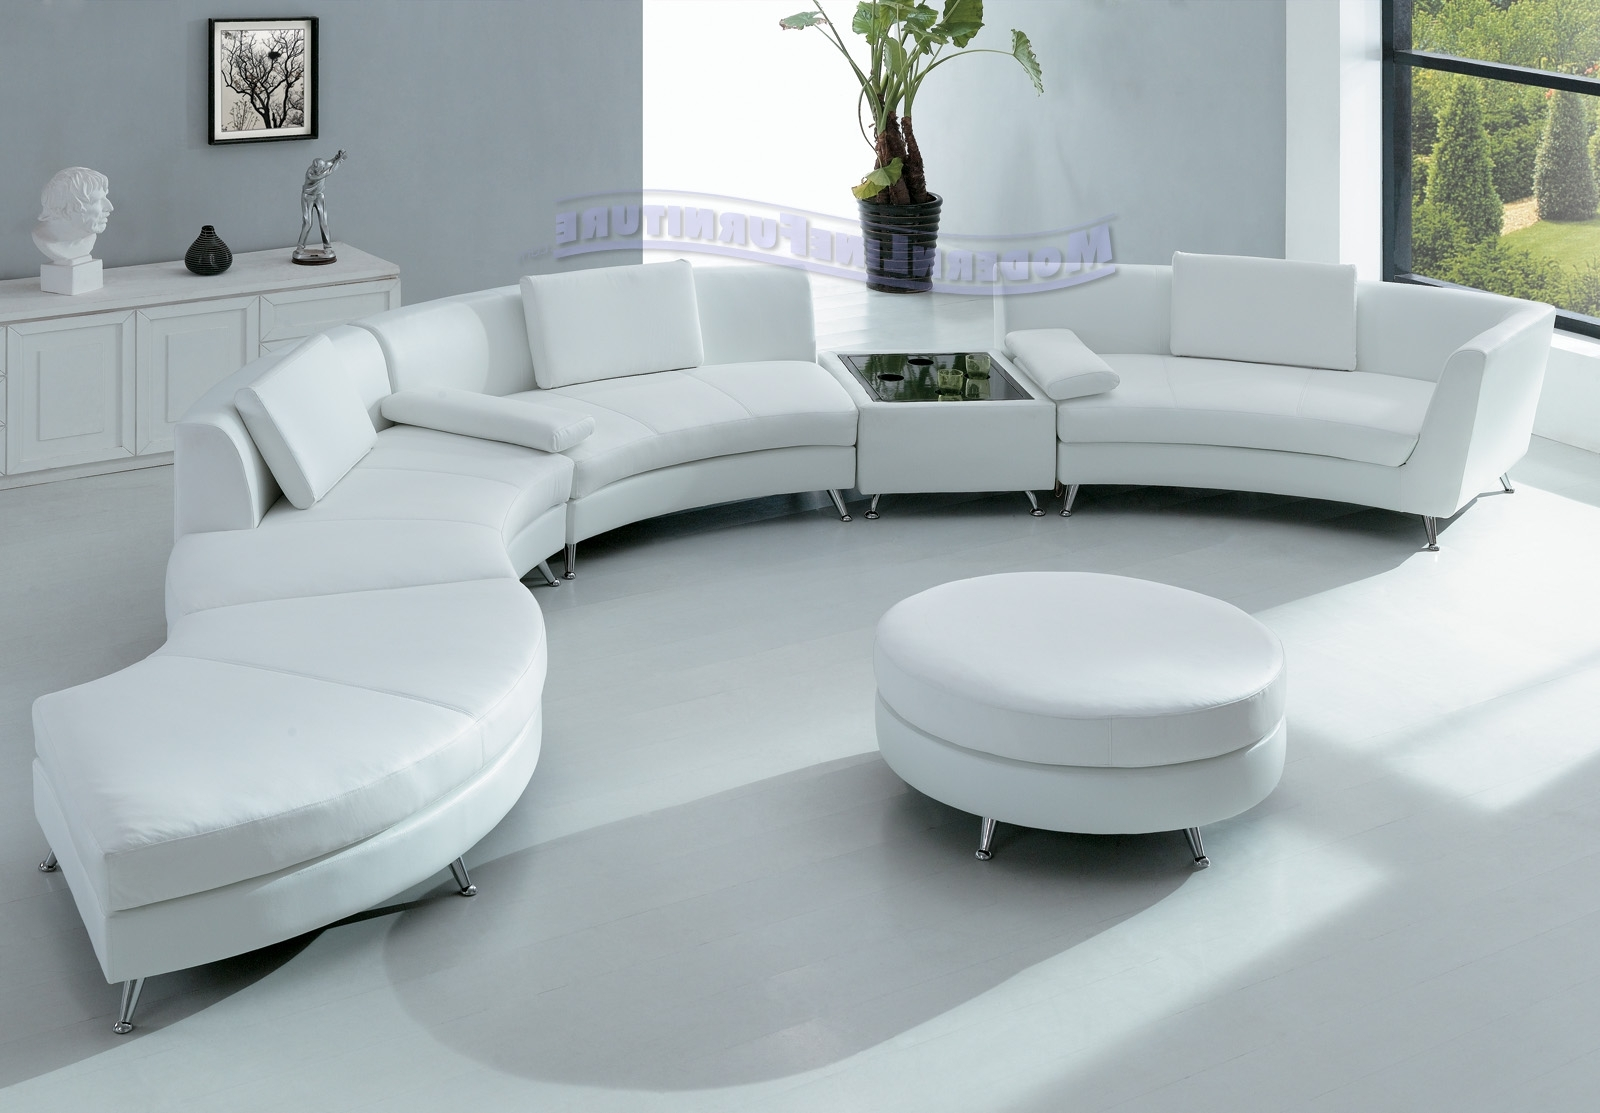 Image Gallery Of Round Sofas View 17